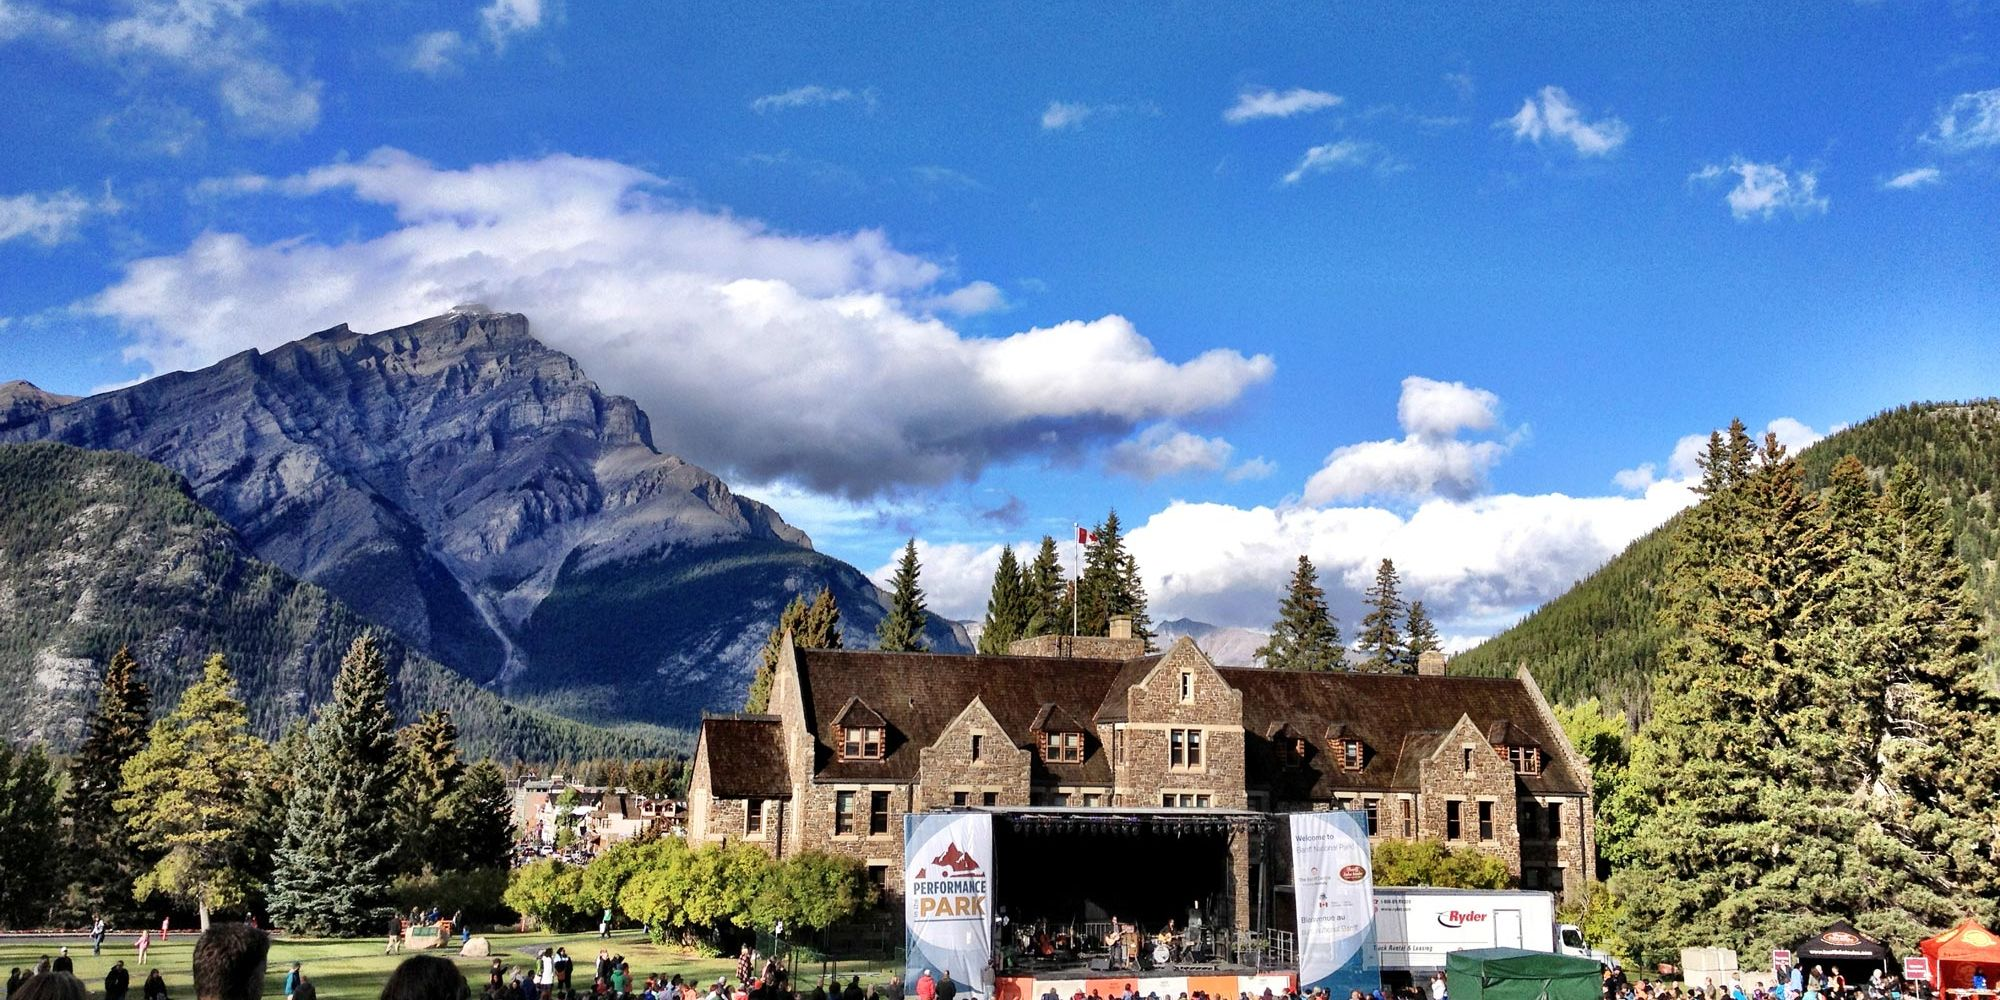 The annual Performance in the Park conference series, held in Banff, AB